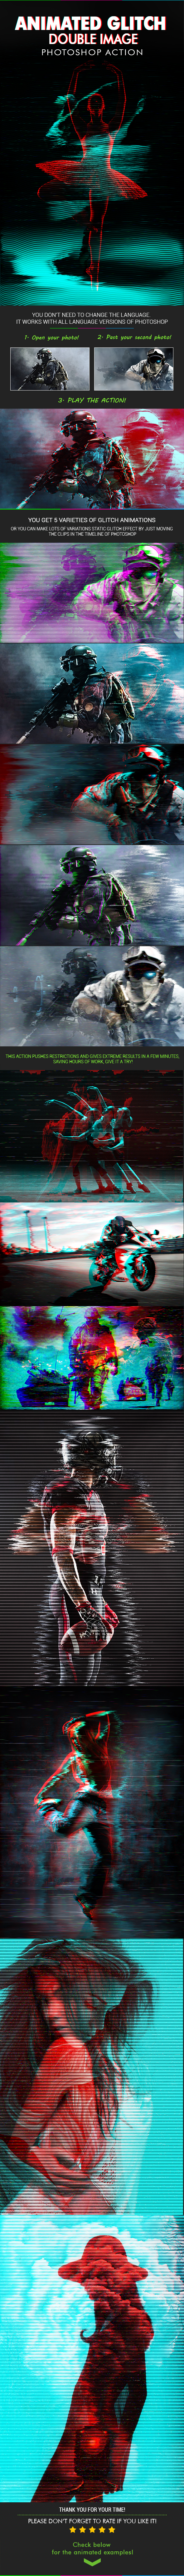 GraphicRiver Animated Glitch Double Image 20289525